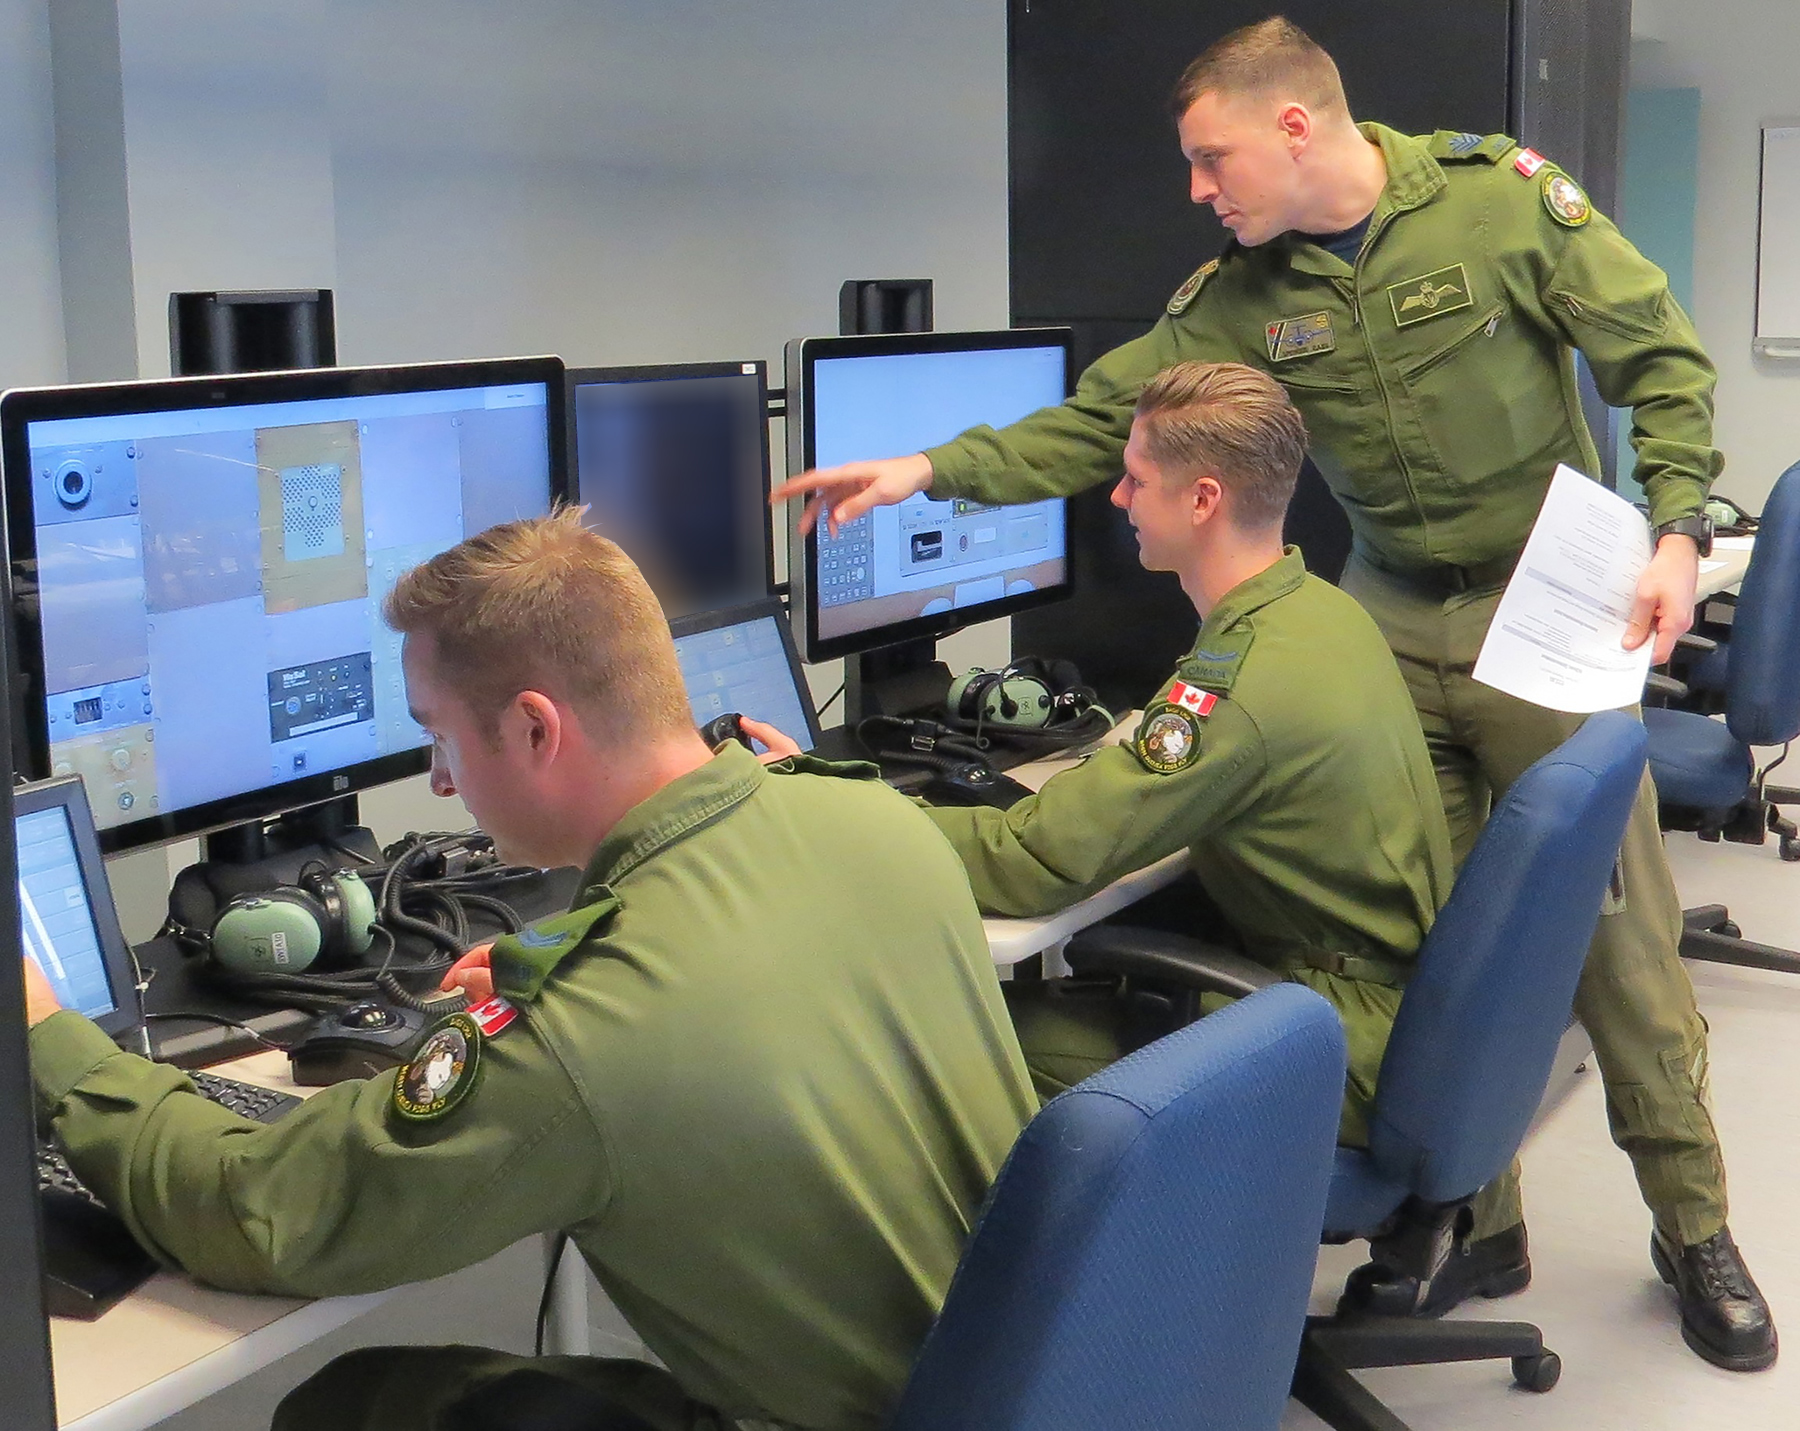 Sgt Spencer Cass instructs AES Op students Cpl Matthew Denis (left) and Cpl Connor Slaunwhite on the newly installed procedural crew trainer system at 402 Squadron, located at 17 Wing Winnipeg, Man.